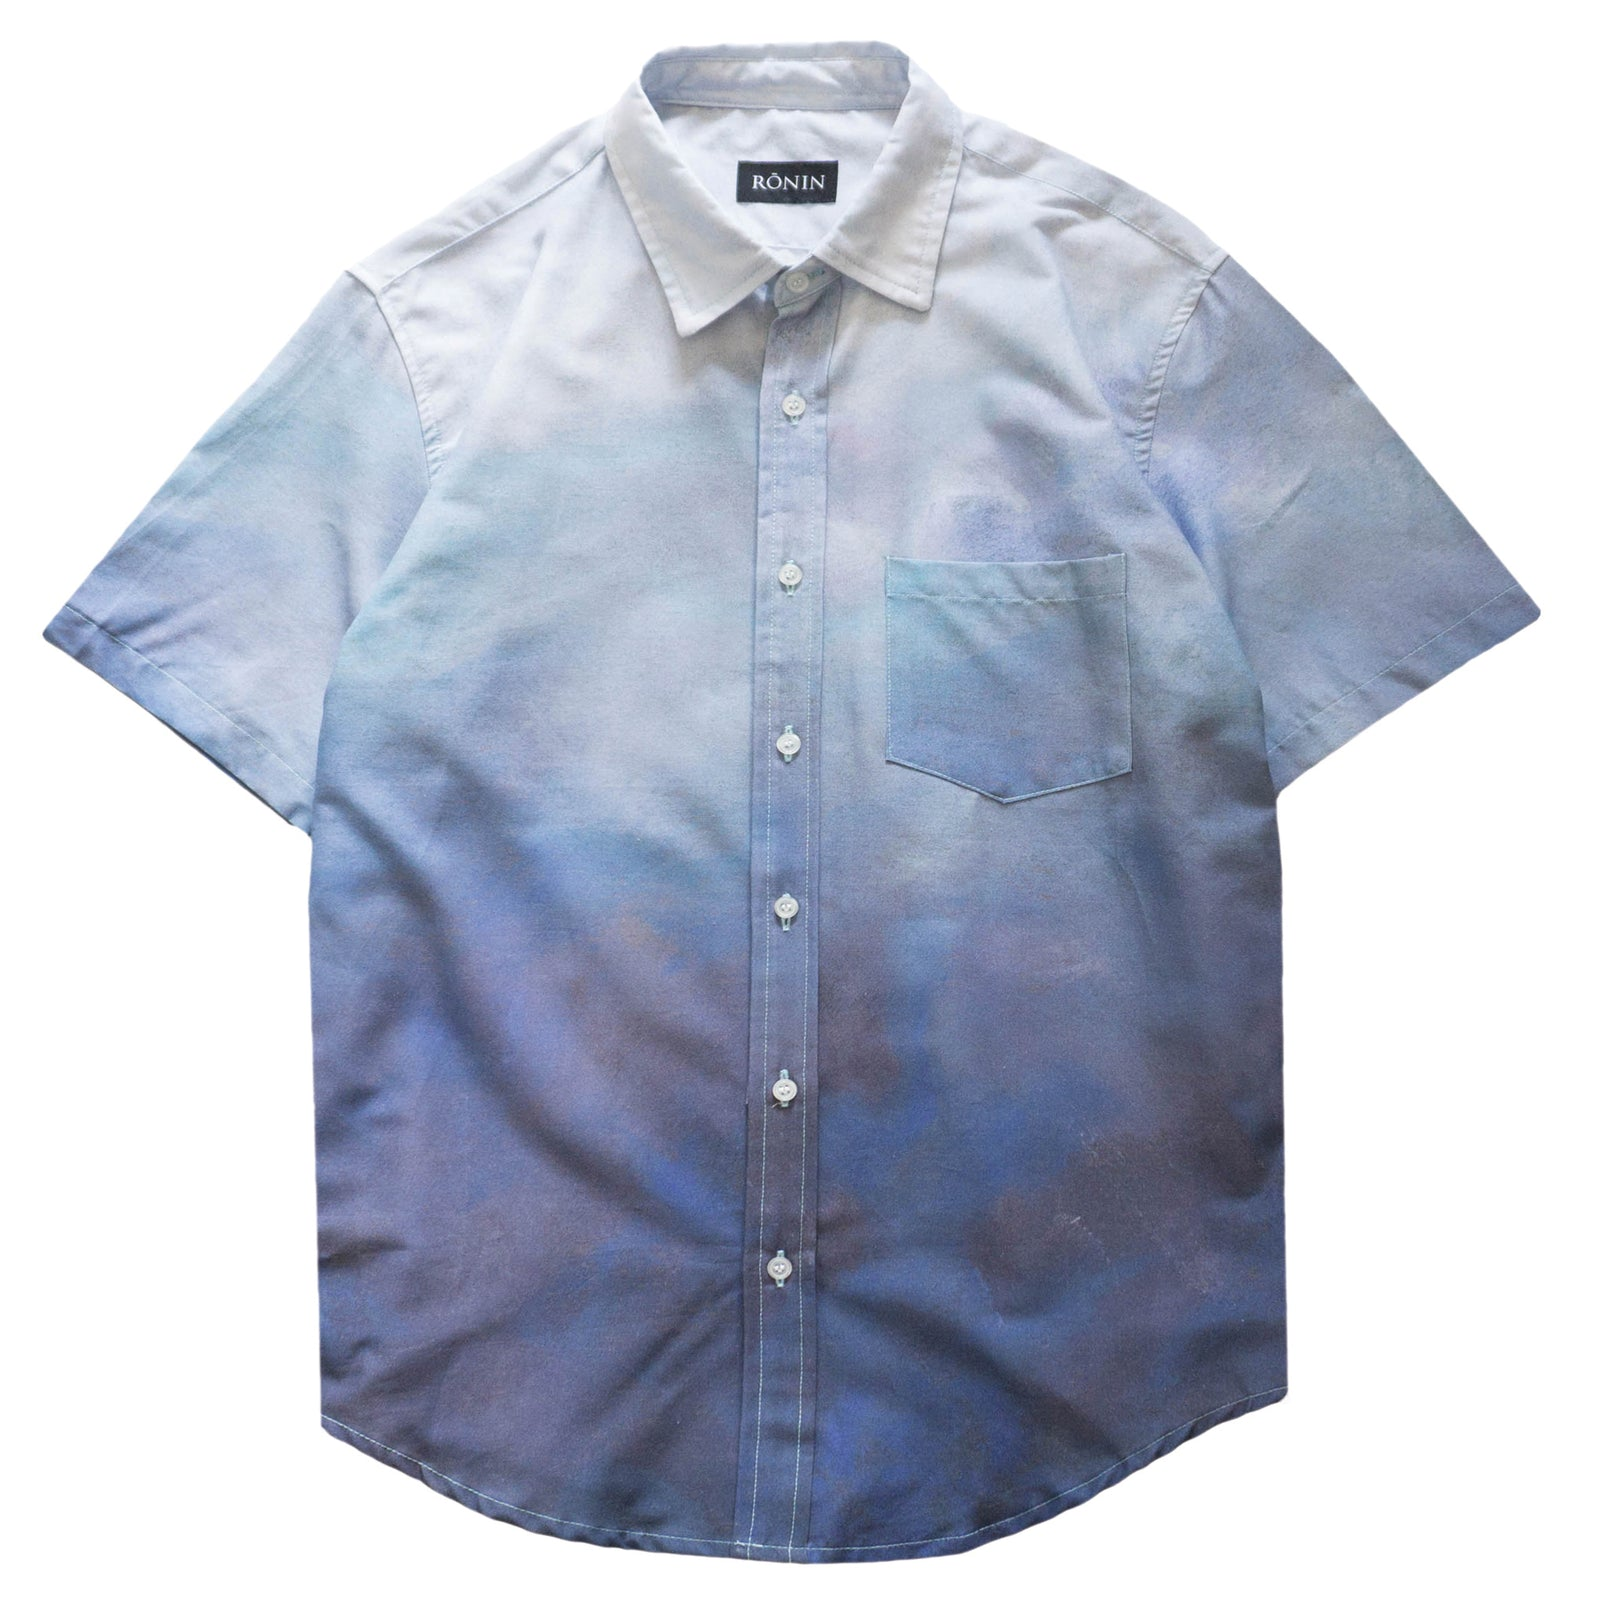 Cloud Button Up - Blue